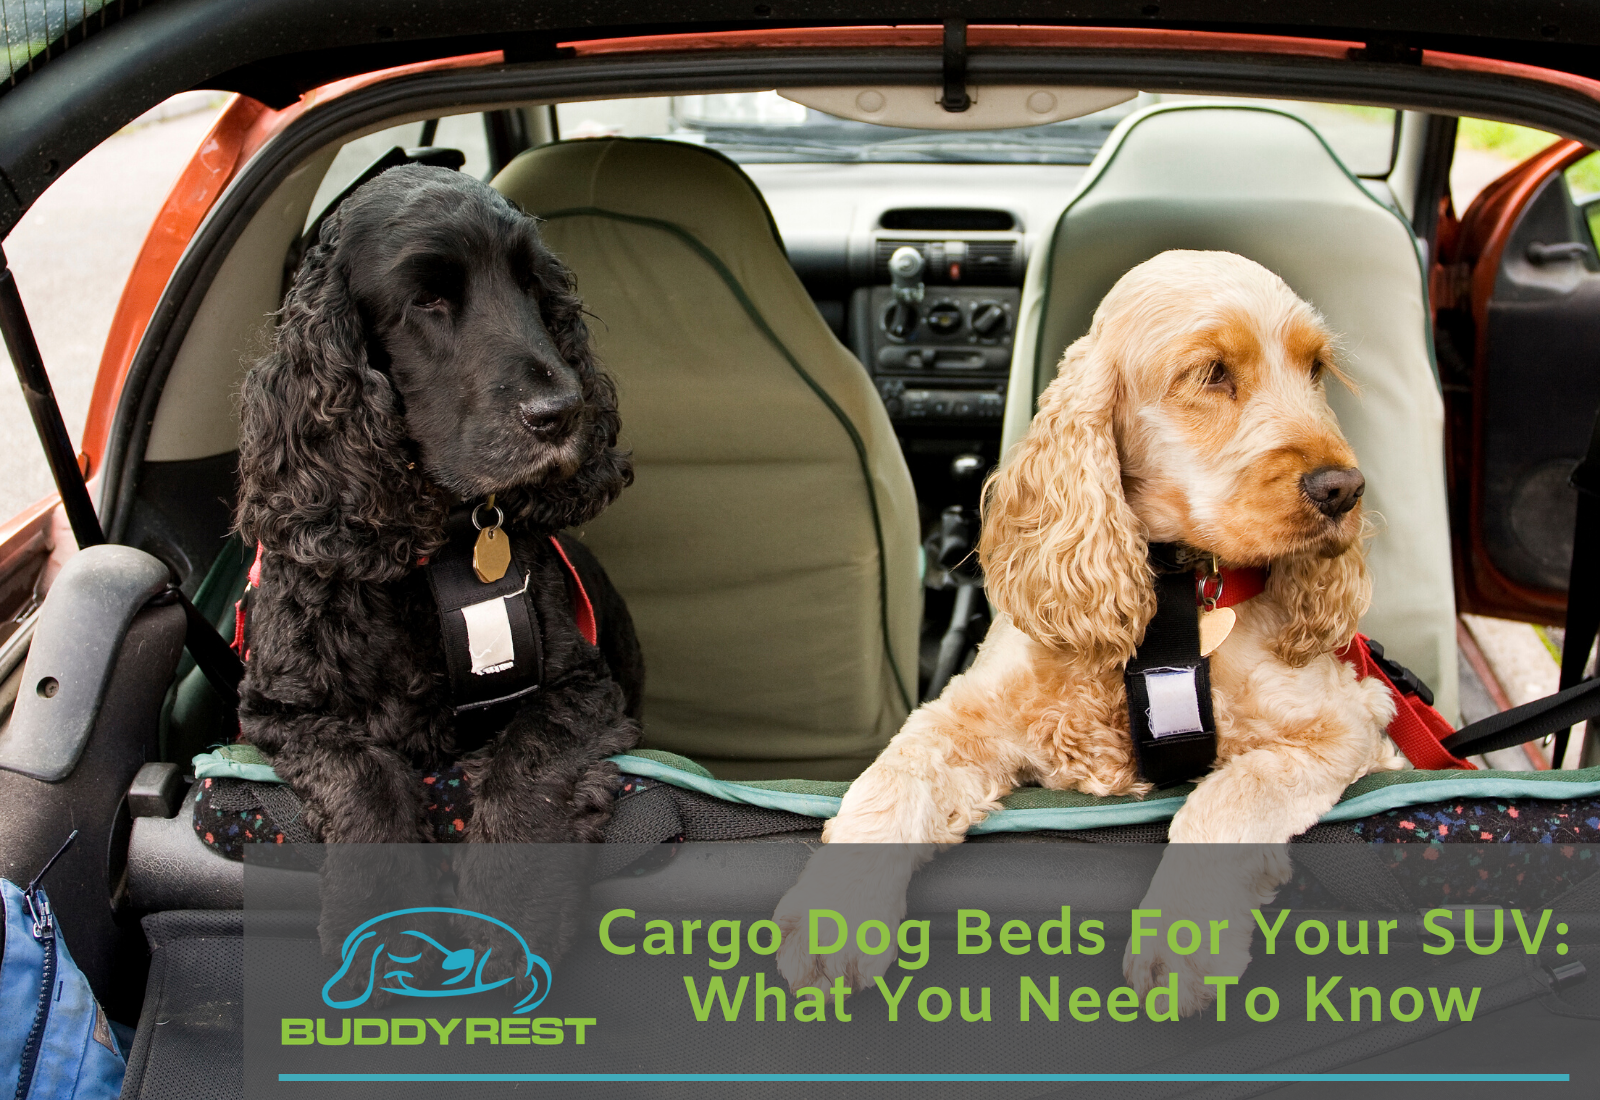 Cargo Dog Beds for Your SUV: What You Need to Know